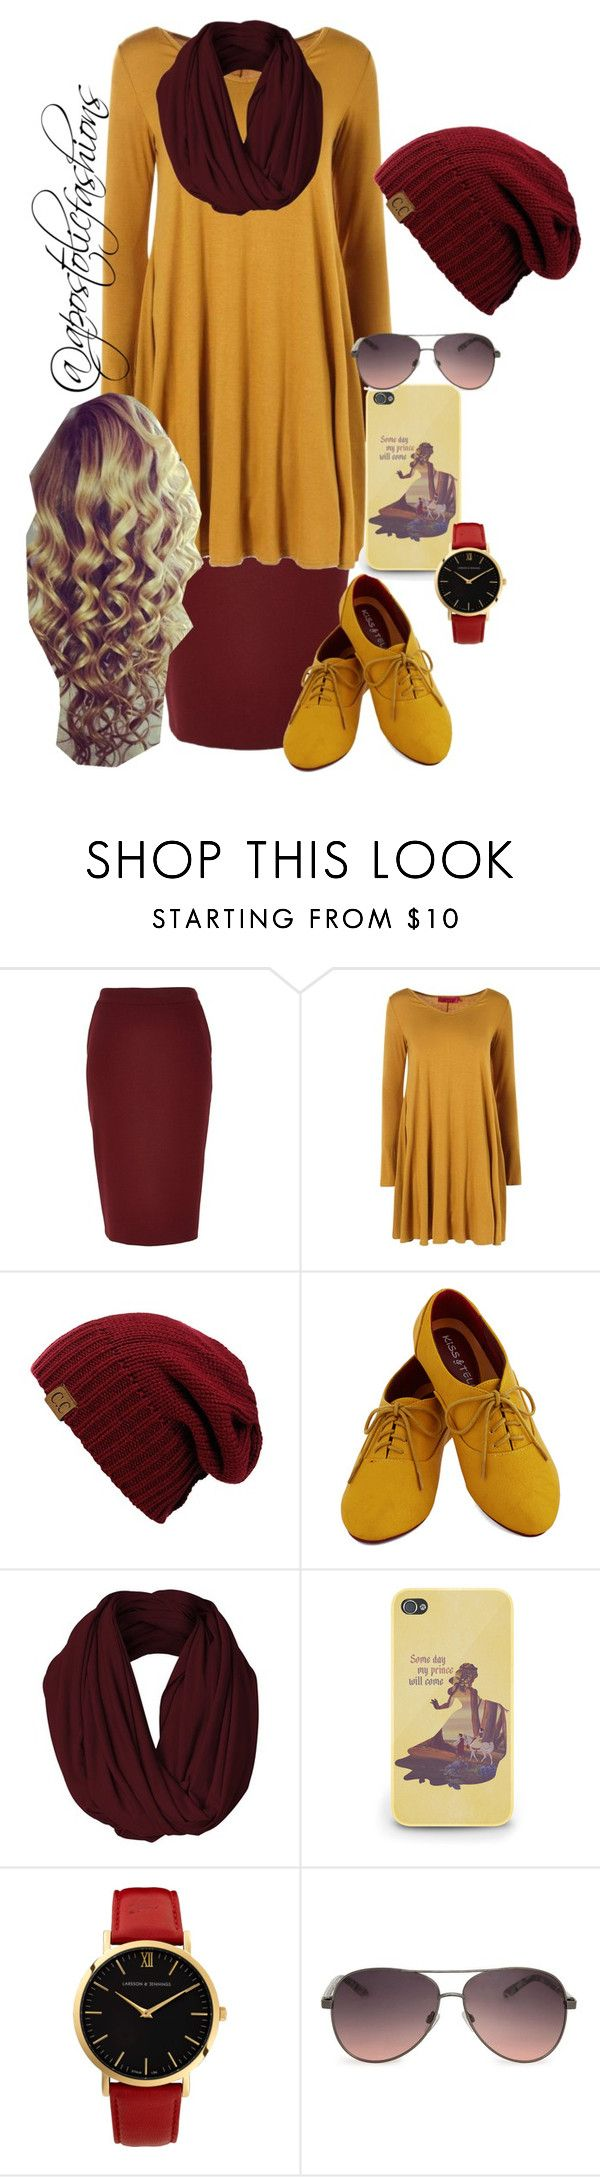 """Apostolic Fashions #915"" by apostolicfashions on Polyvore featuring River Island, Larsson & Jennings and MANGO"